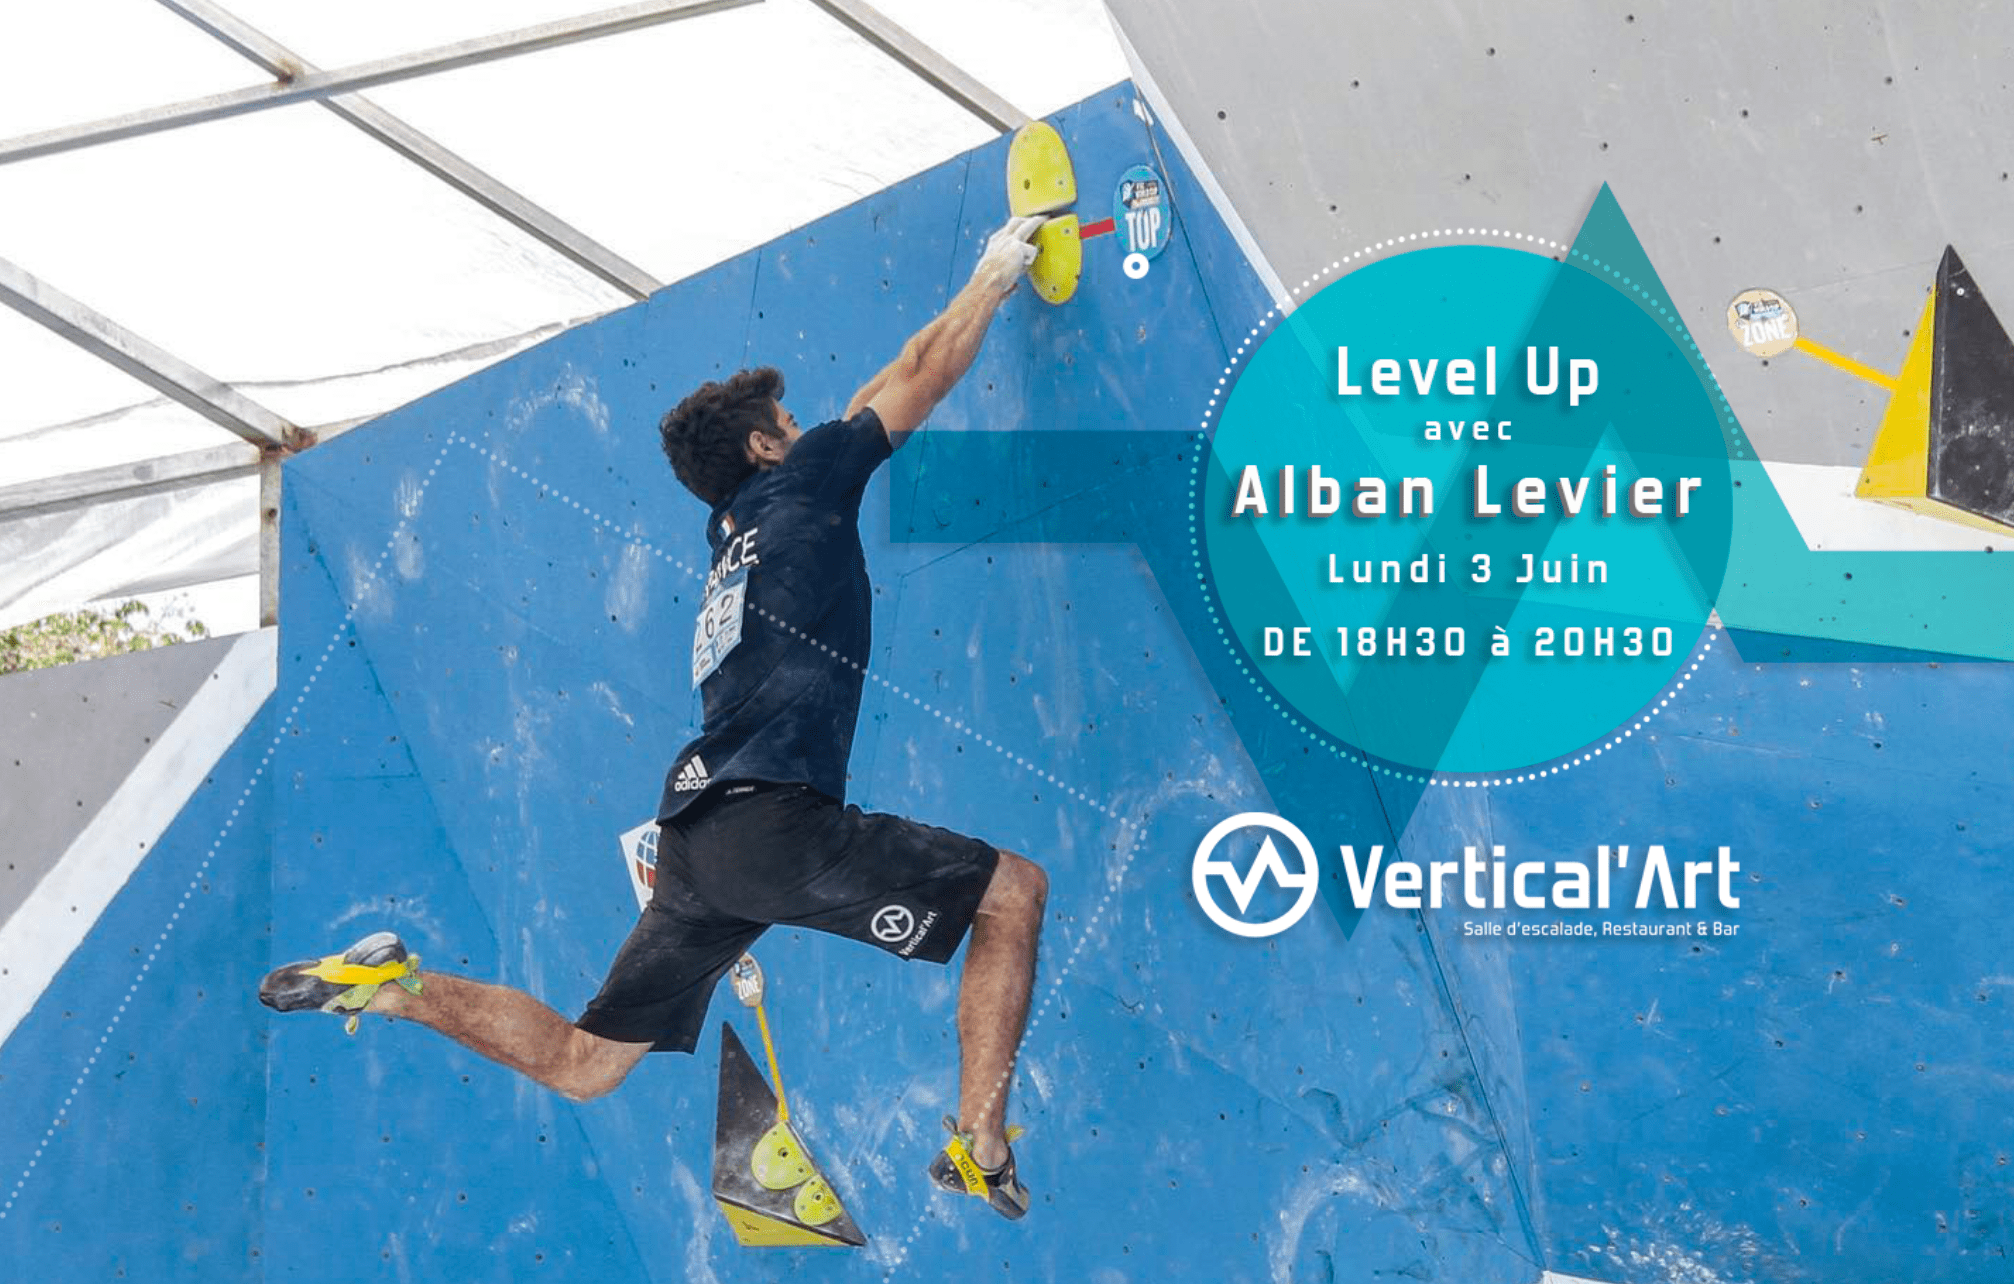 master class Alban Levier - champion d'escalade de bloc - progresser sport - motivation